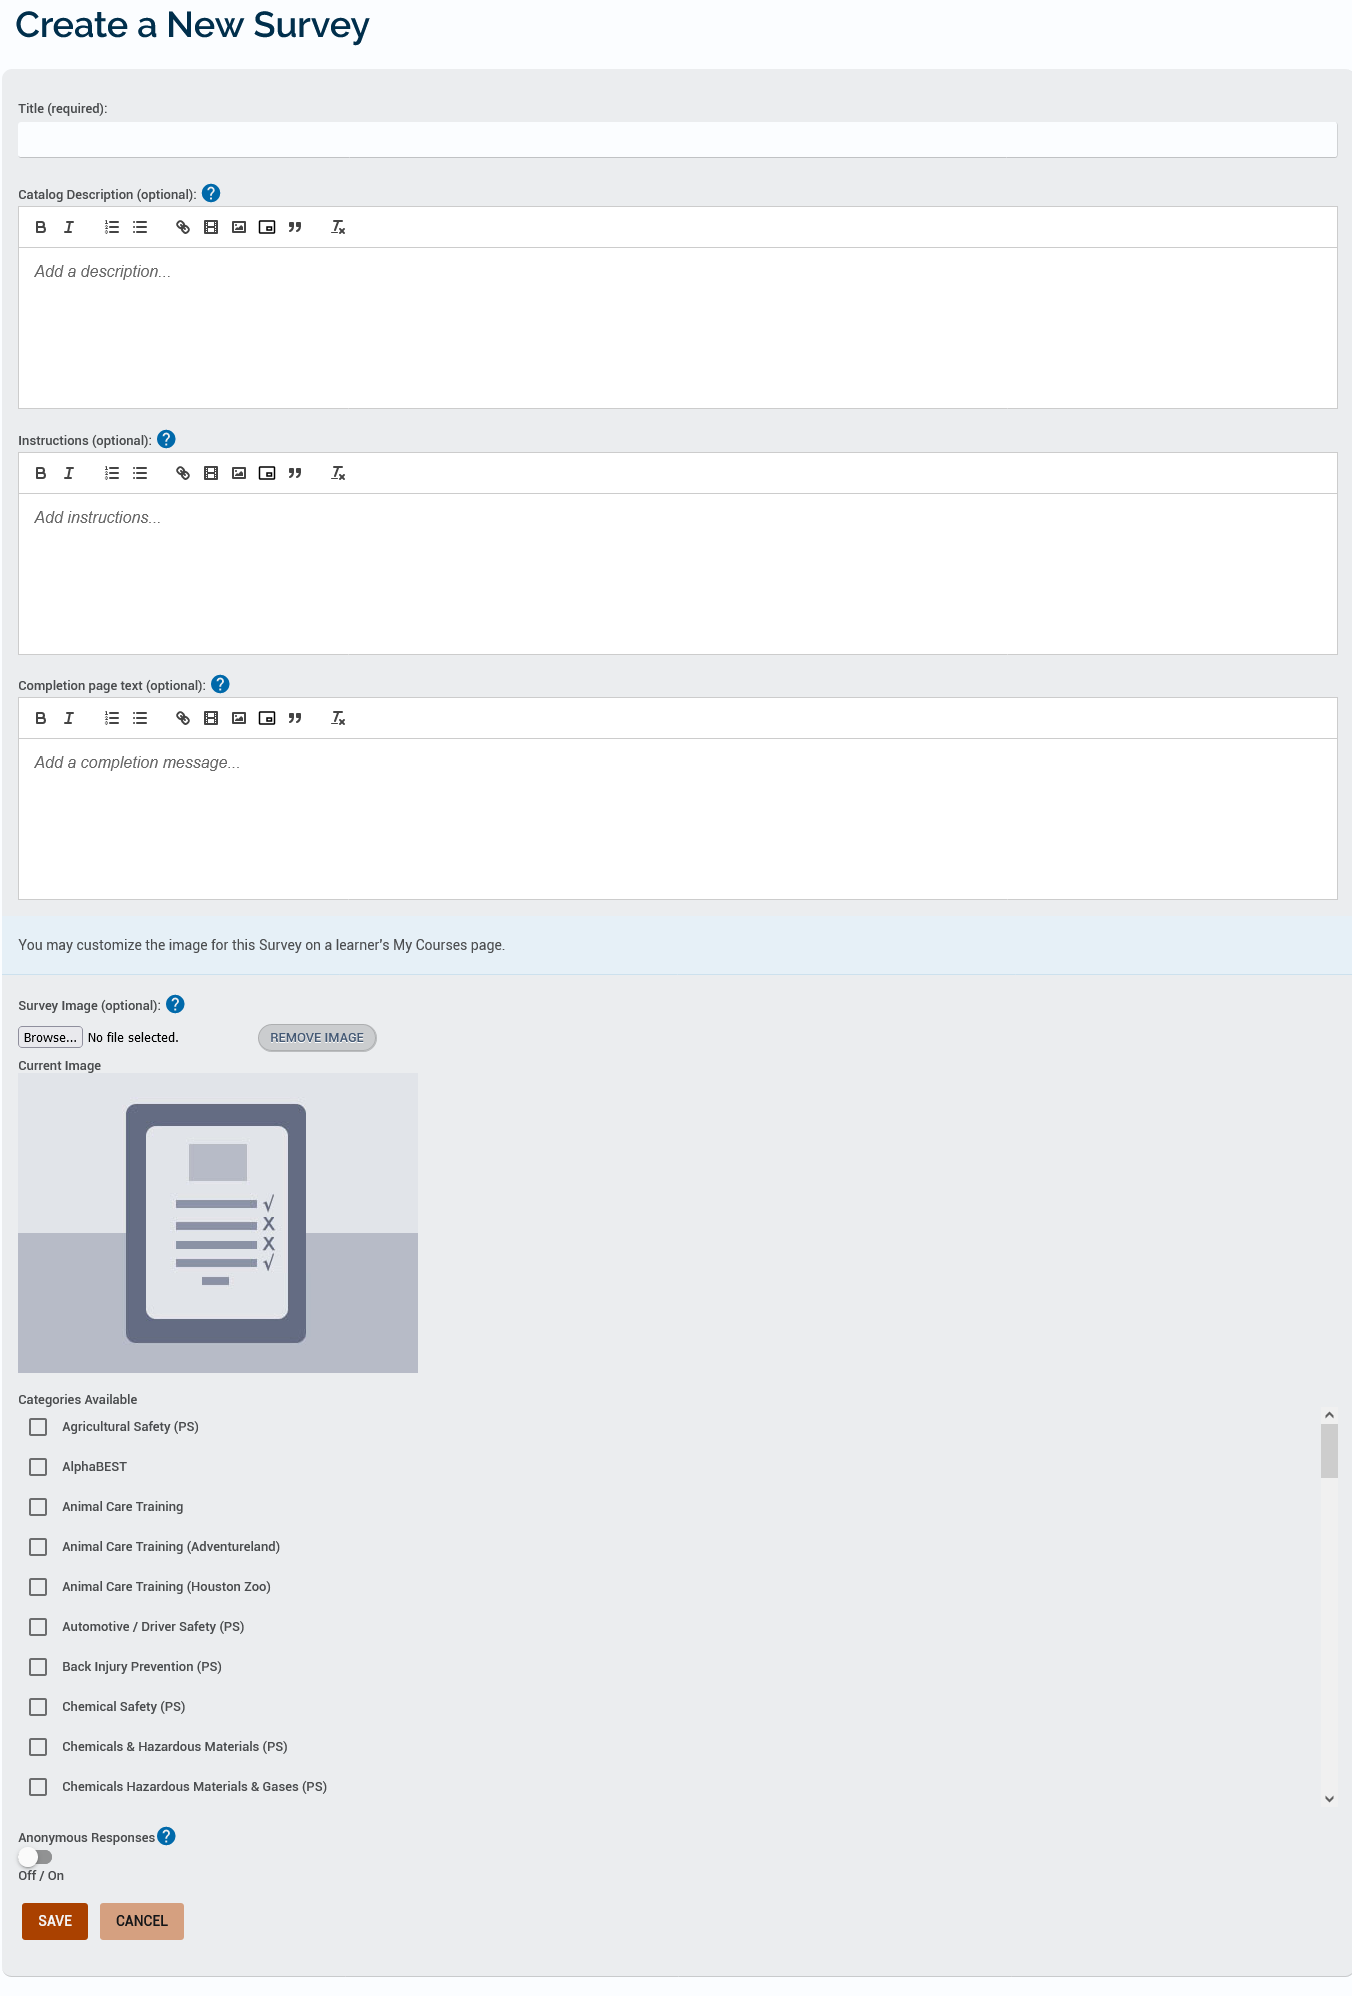 Example Create a New Survey page listing the fields mentioned previously.